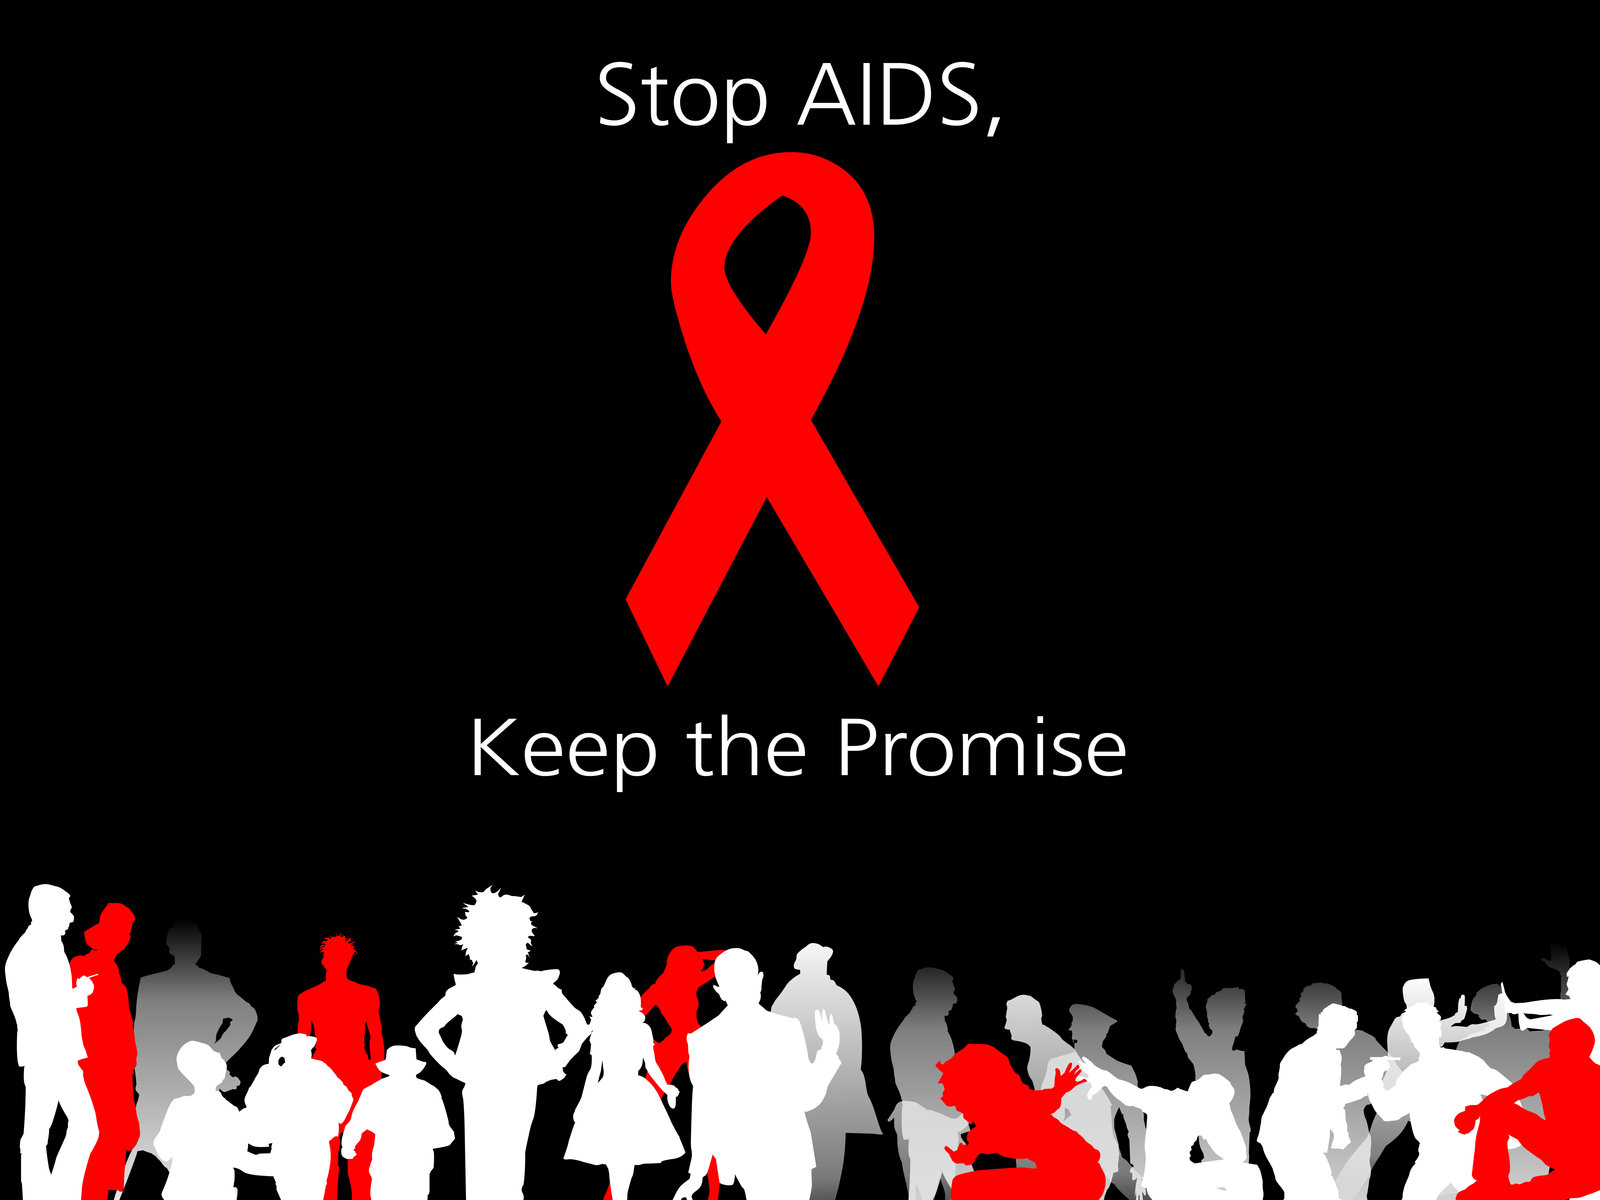 Inspirational Slogans World Aids Day 2017 Inspirational Quotes Slogans About Hivaids